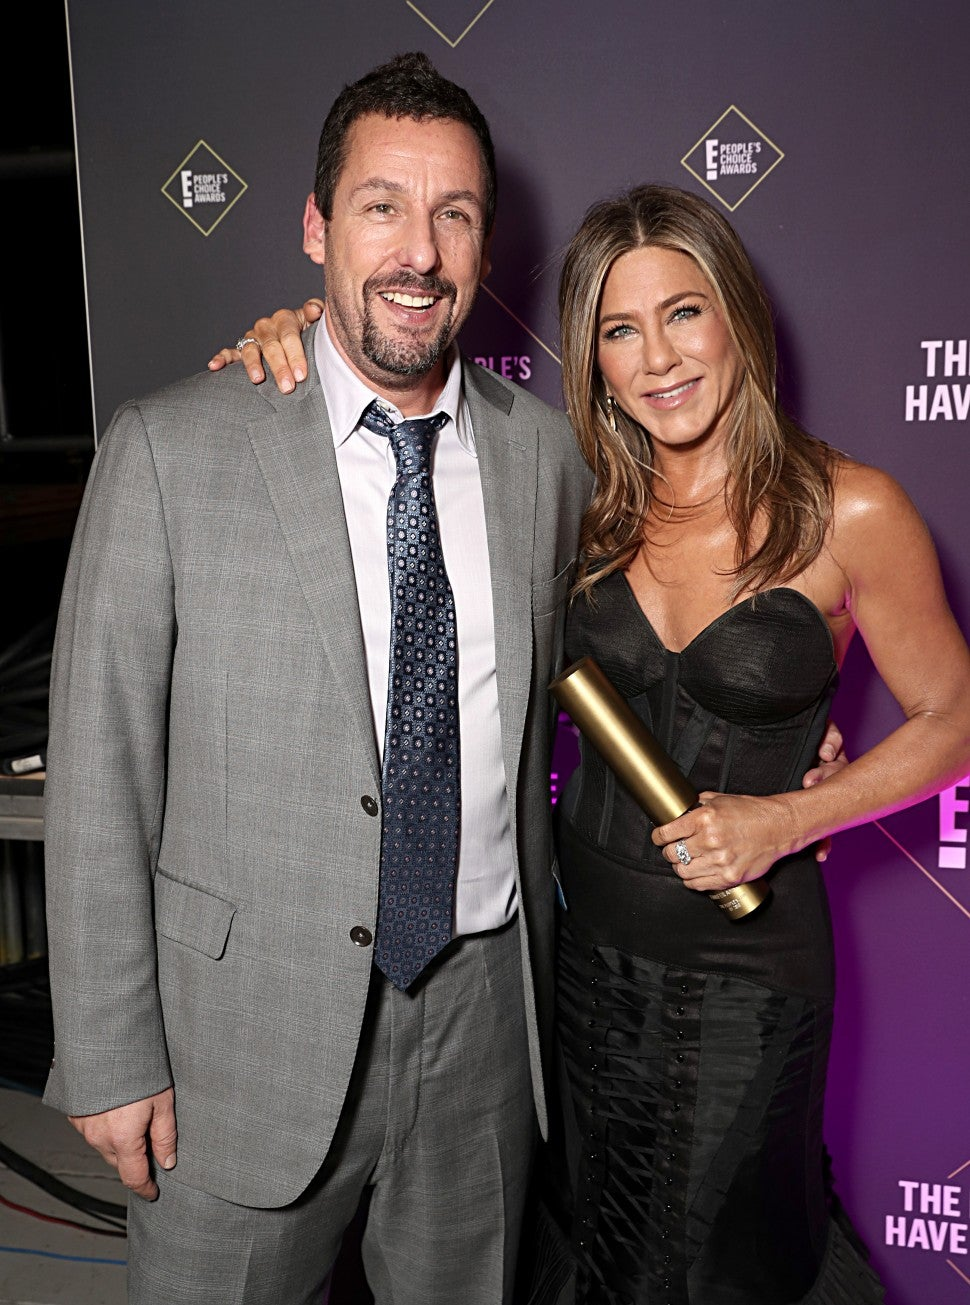 Adam Sandler and Jennifer Aniston pose backstage during the 2019 E! People's Choice Awards